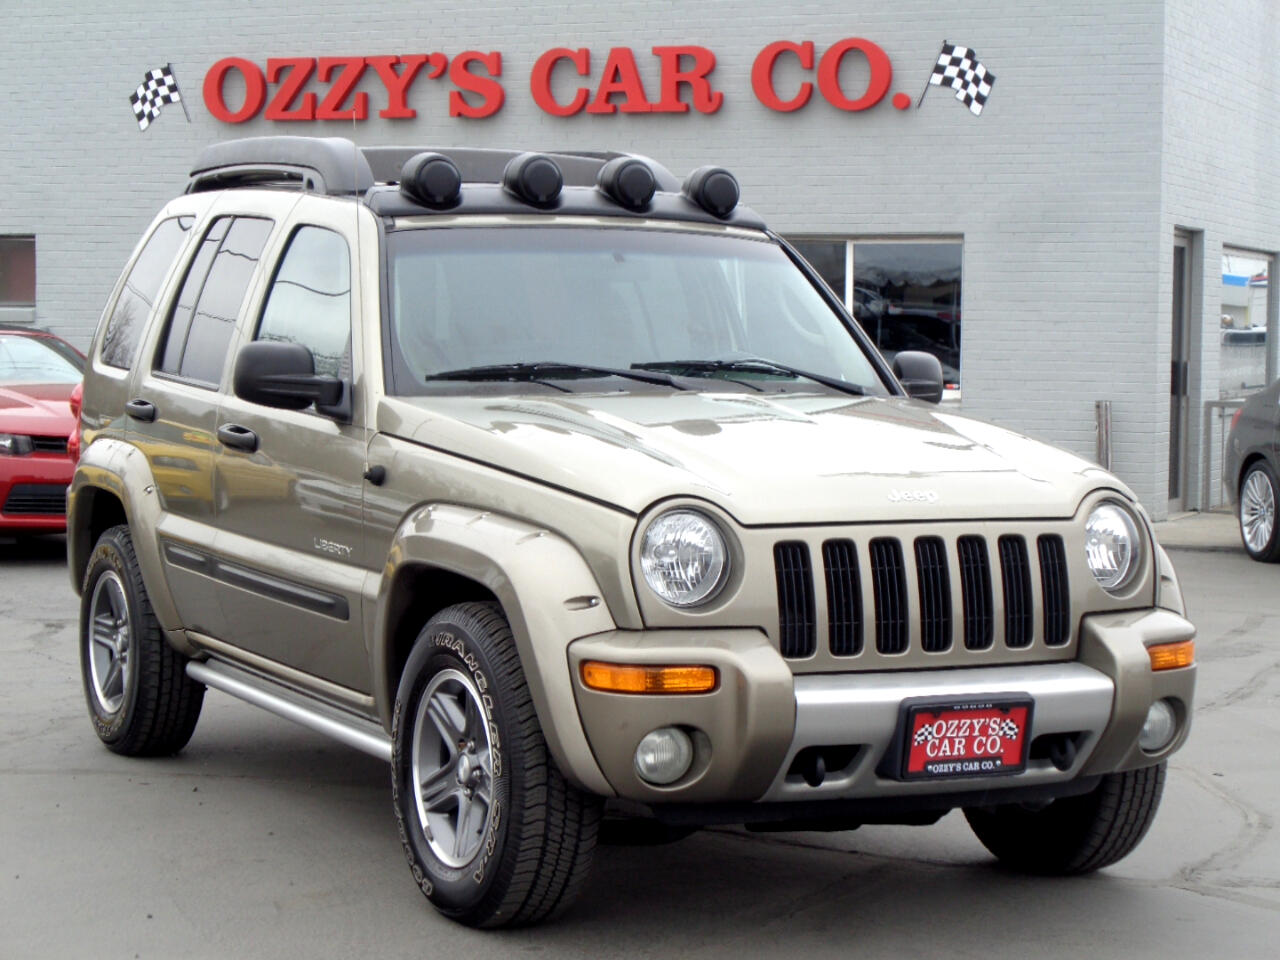 2004 Jeep Liberty 4dr Renegade 4WD